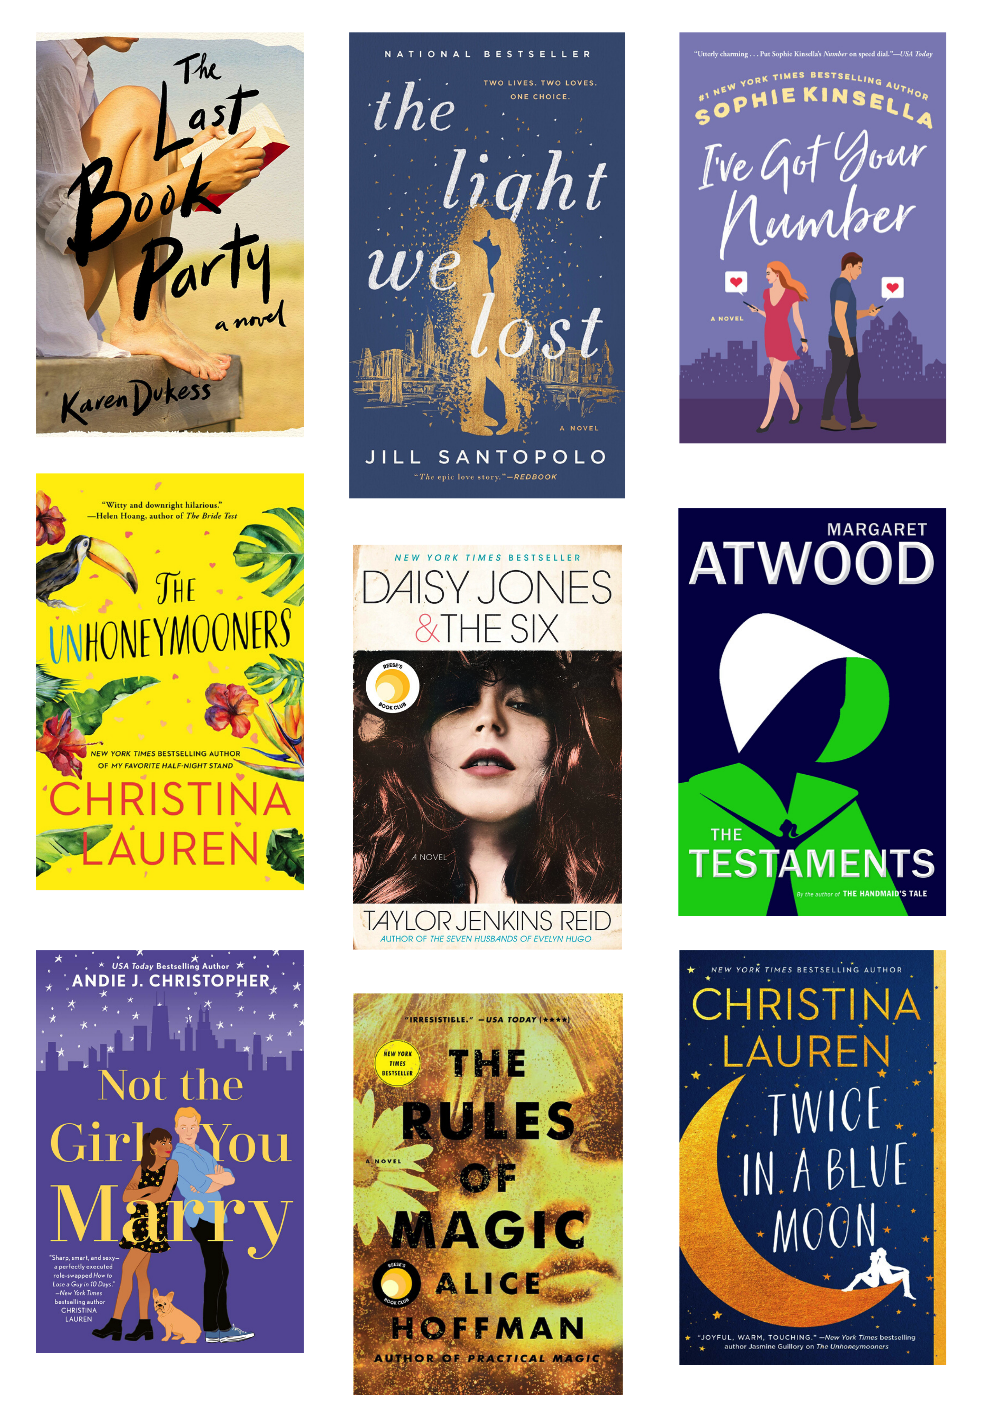 Looking for a great book to read? Here are 9 must read books that I recently read and absolutely loved! | glitterinc.com | @glitterinc